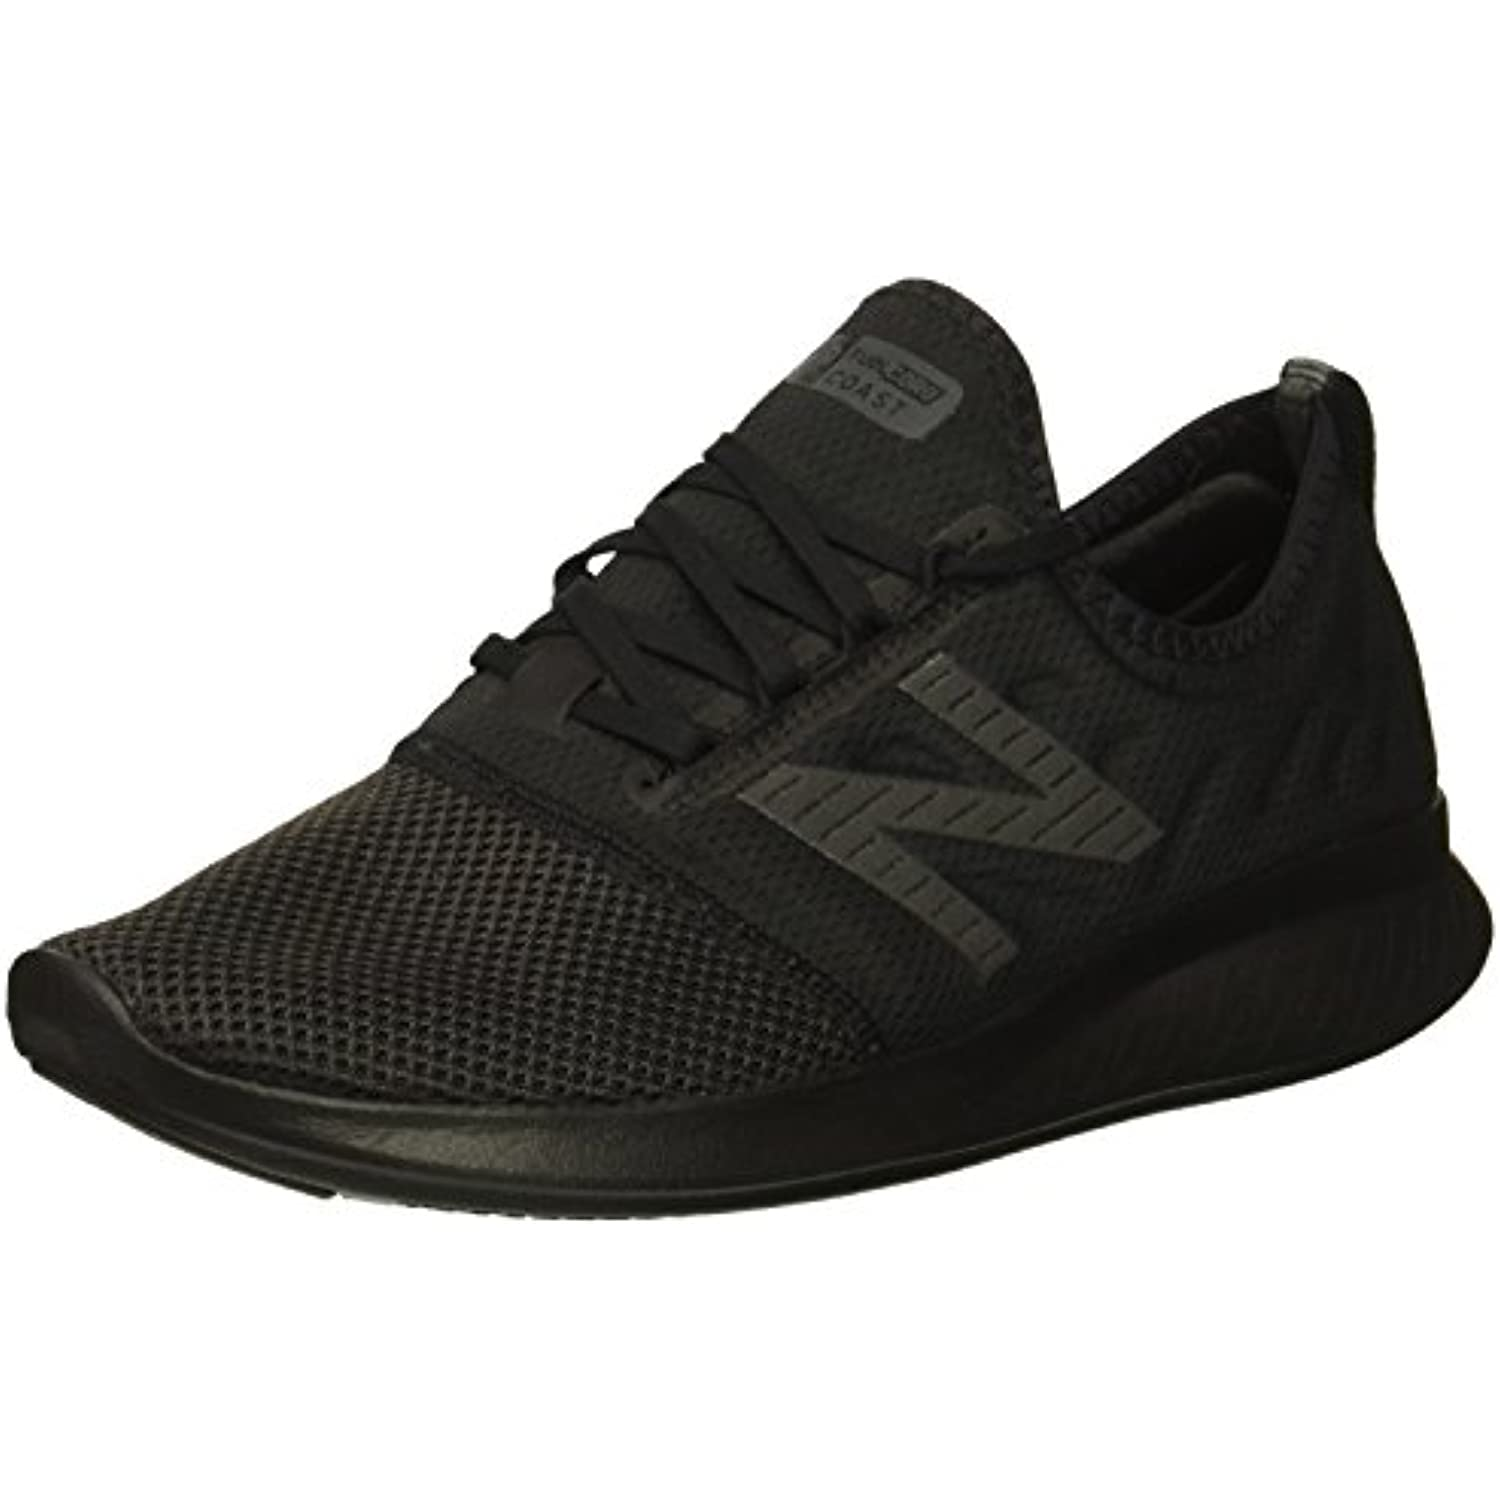 New Balance Fuel Core Coast V4, Running Femme - - - B07GBT94WY - 377f22